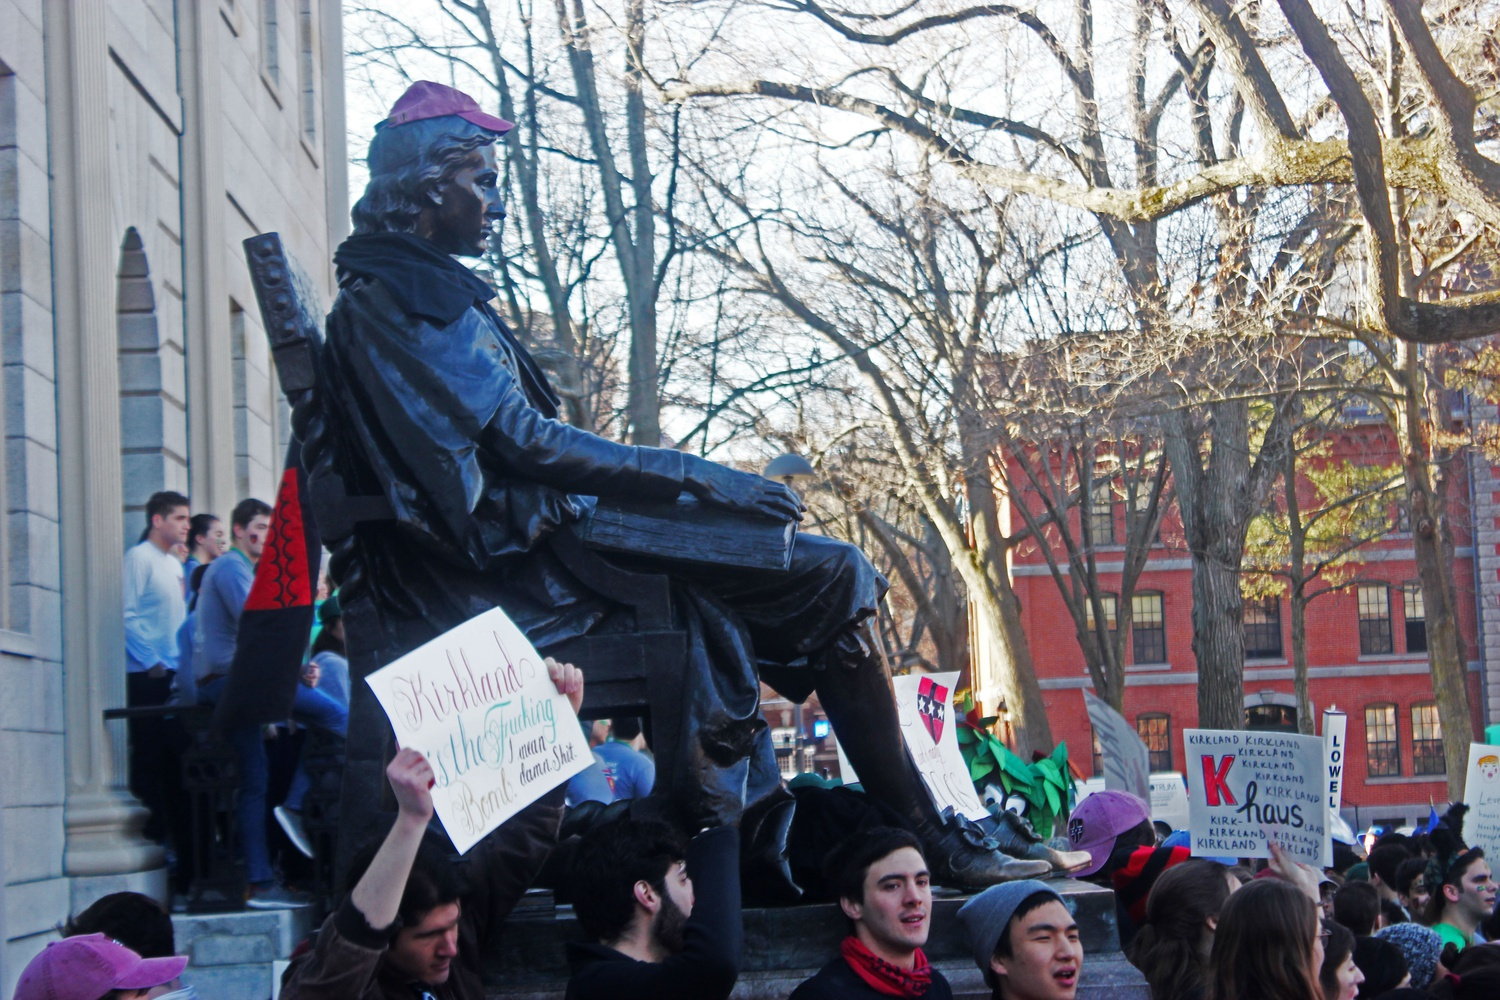 Members of Kirkland House stand guard around the John Harvard Statue, which they claimed with a Kirkland baseball cap.